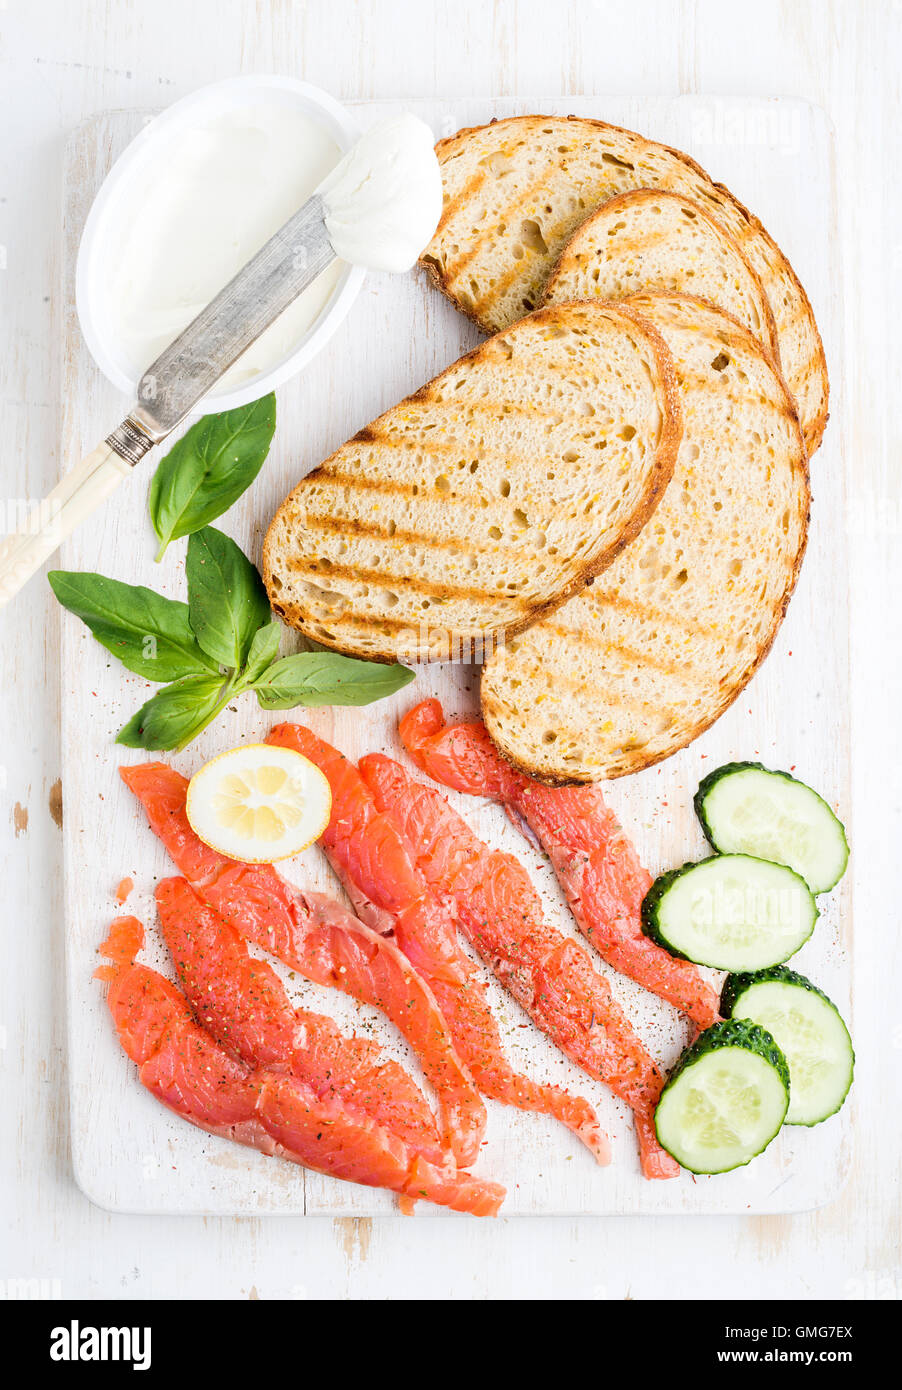 Ingredients for healthy sandwich. Grilled bread slices, smoked salmon, cottage cheese, cucumber nd basil on white - Stock Image